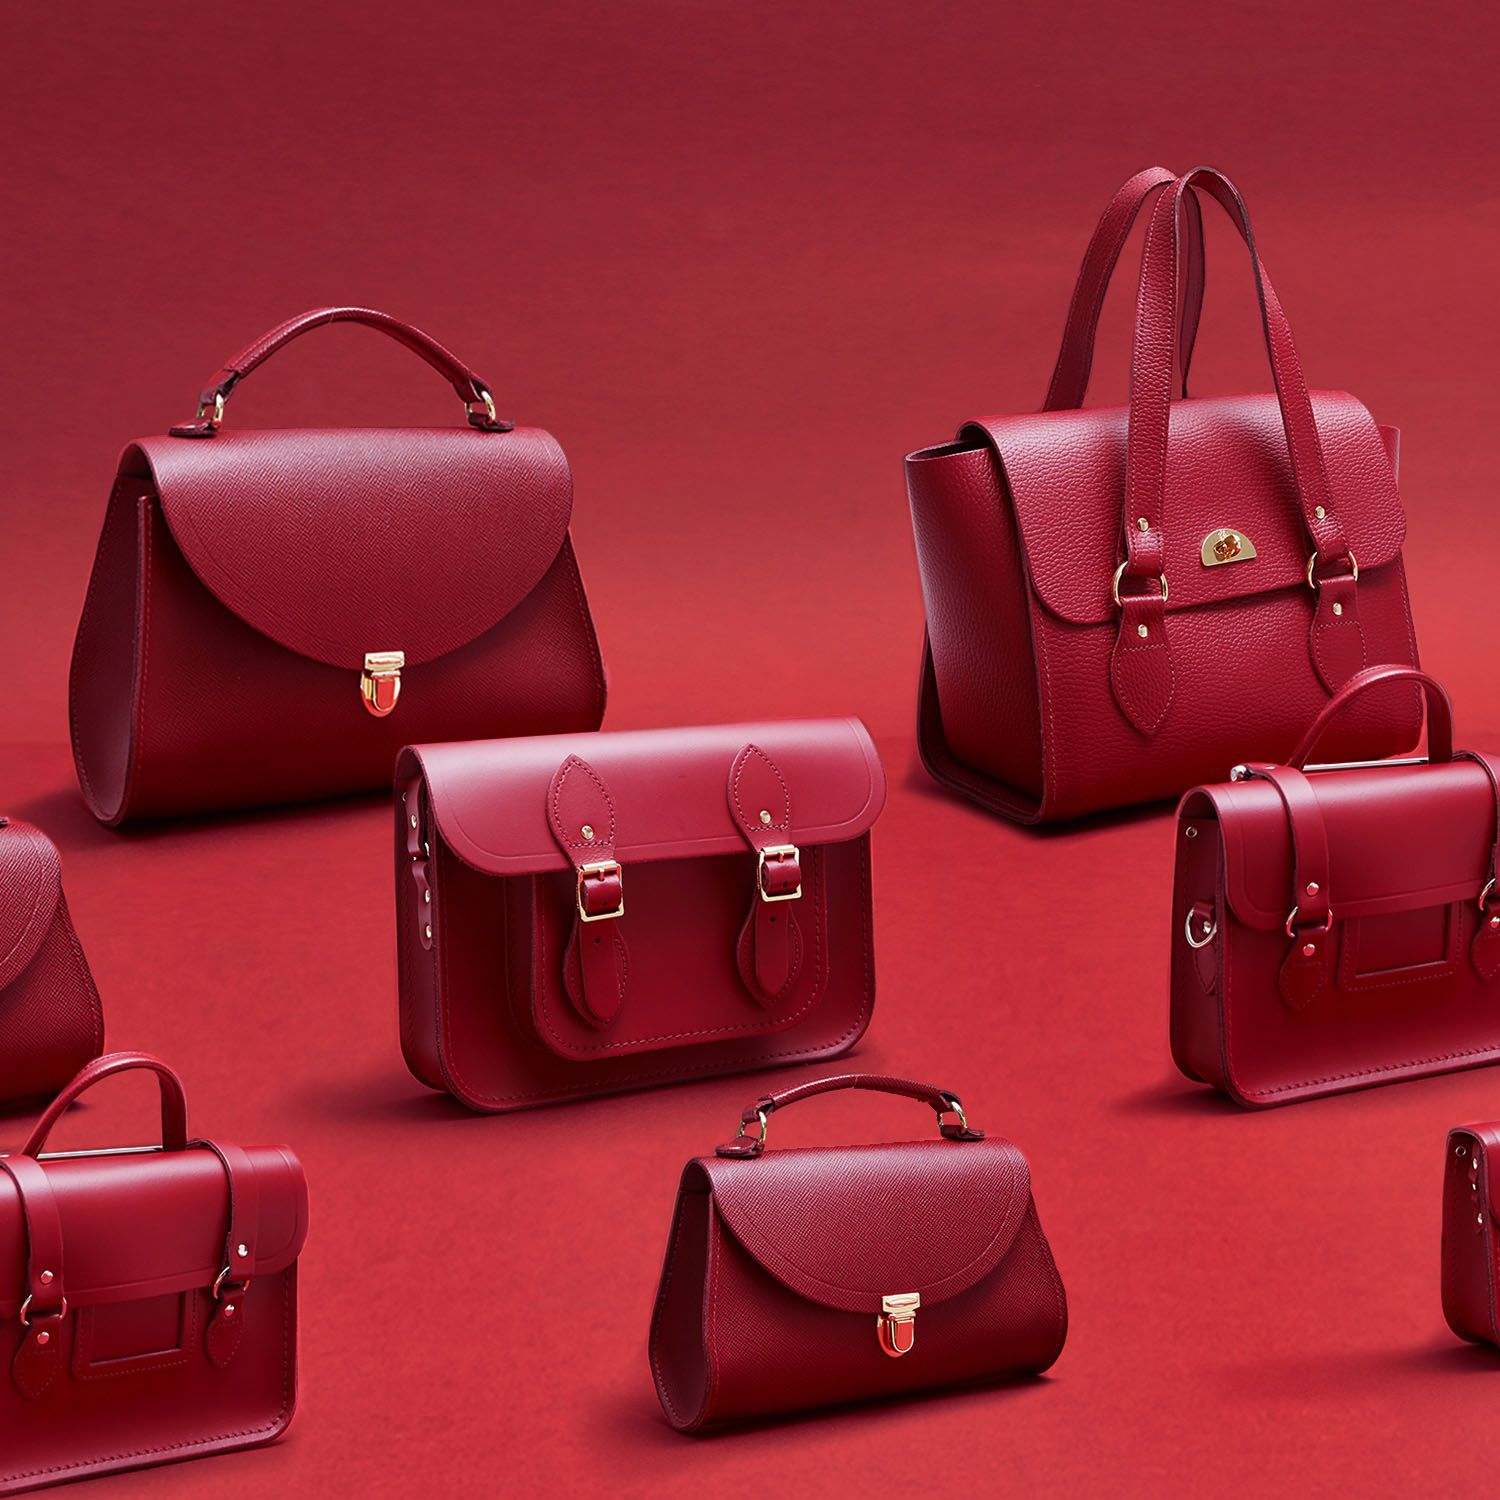 Rhubarb Red | The Cambridge Satchel Company